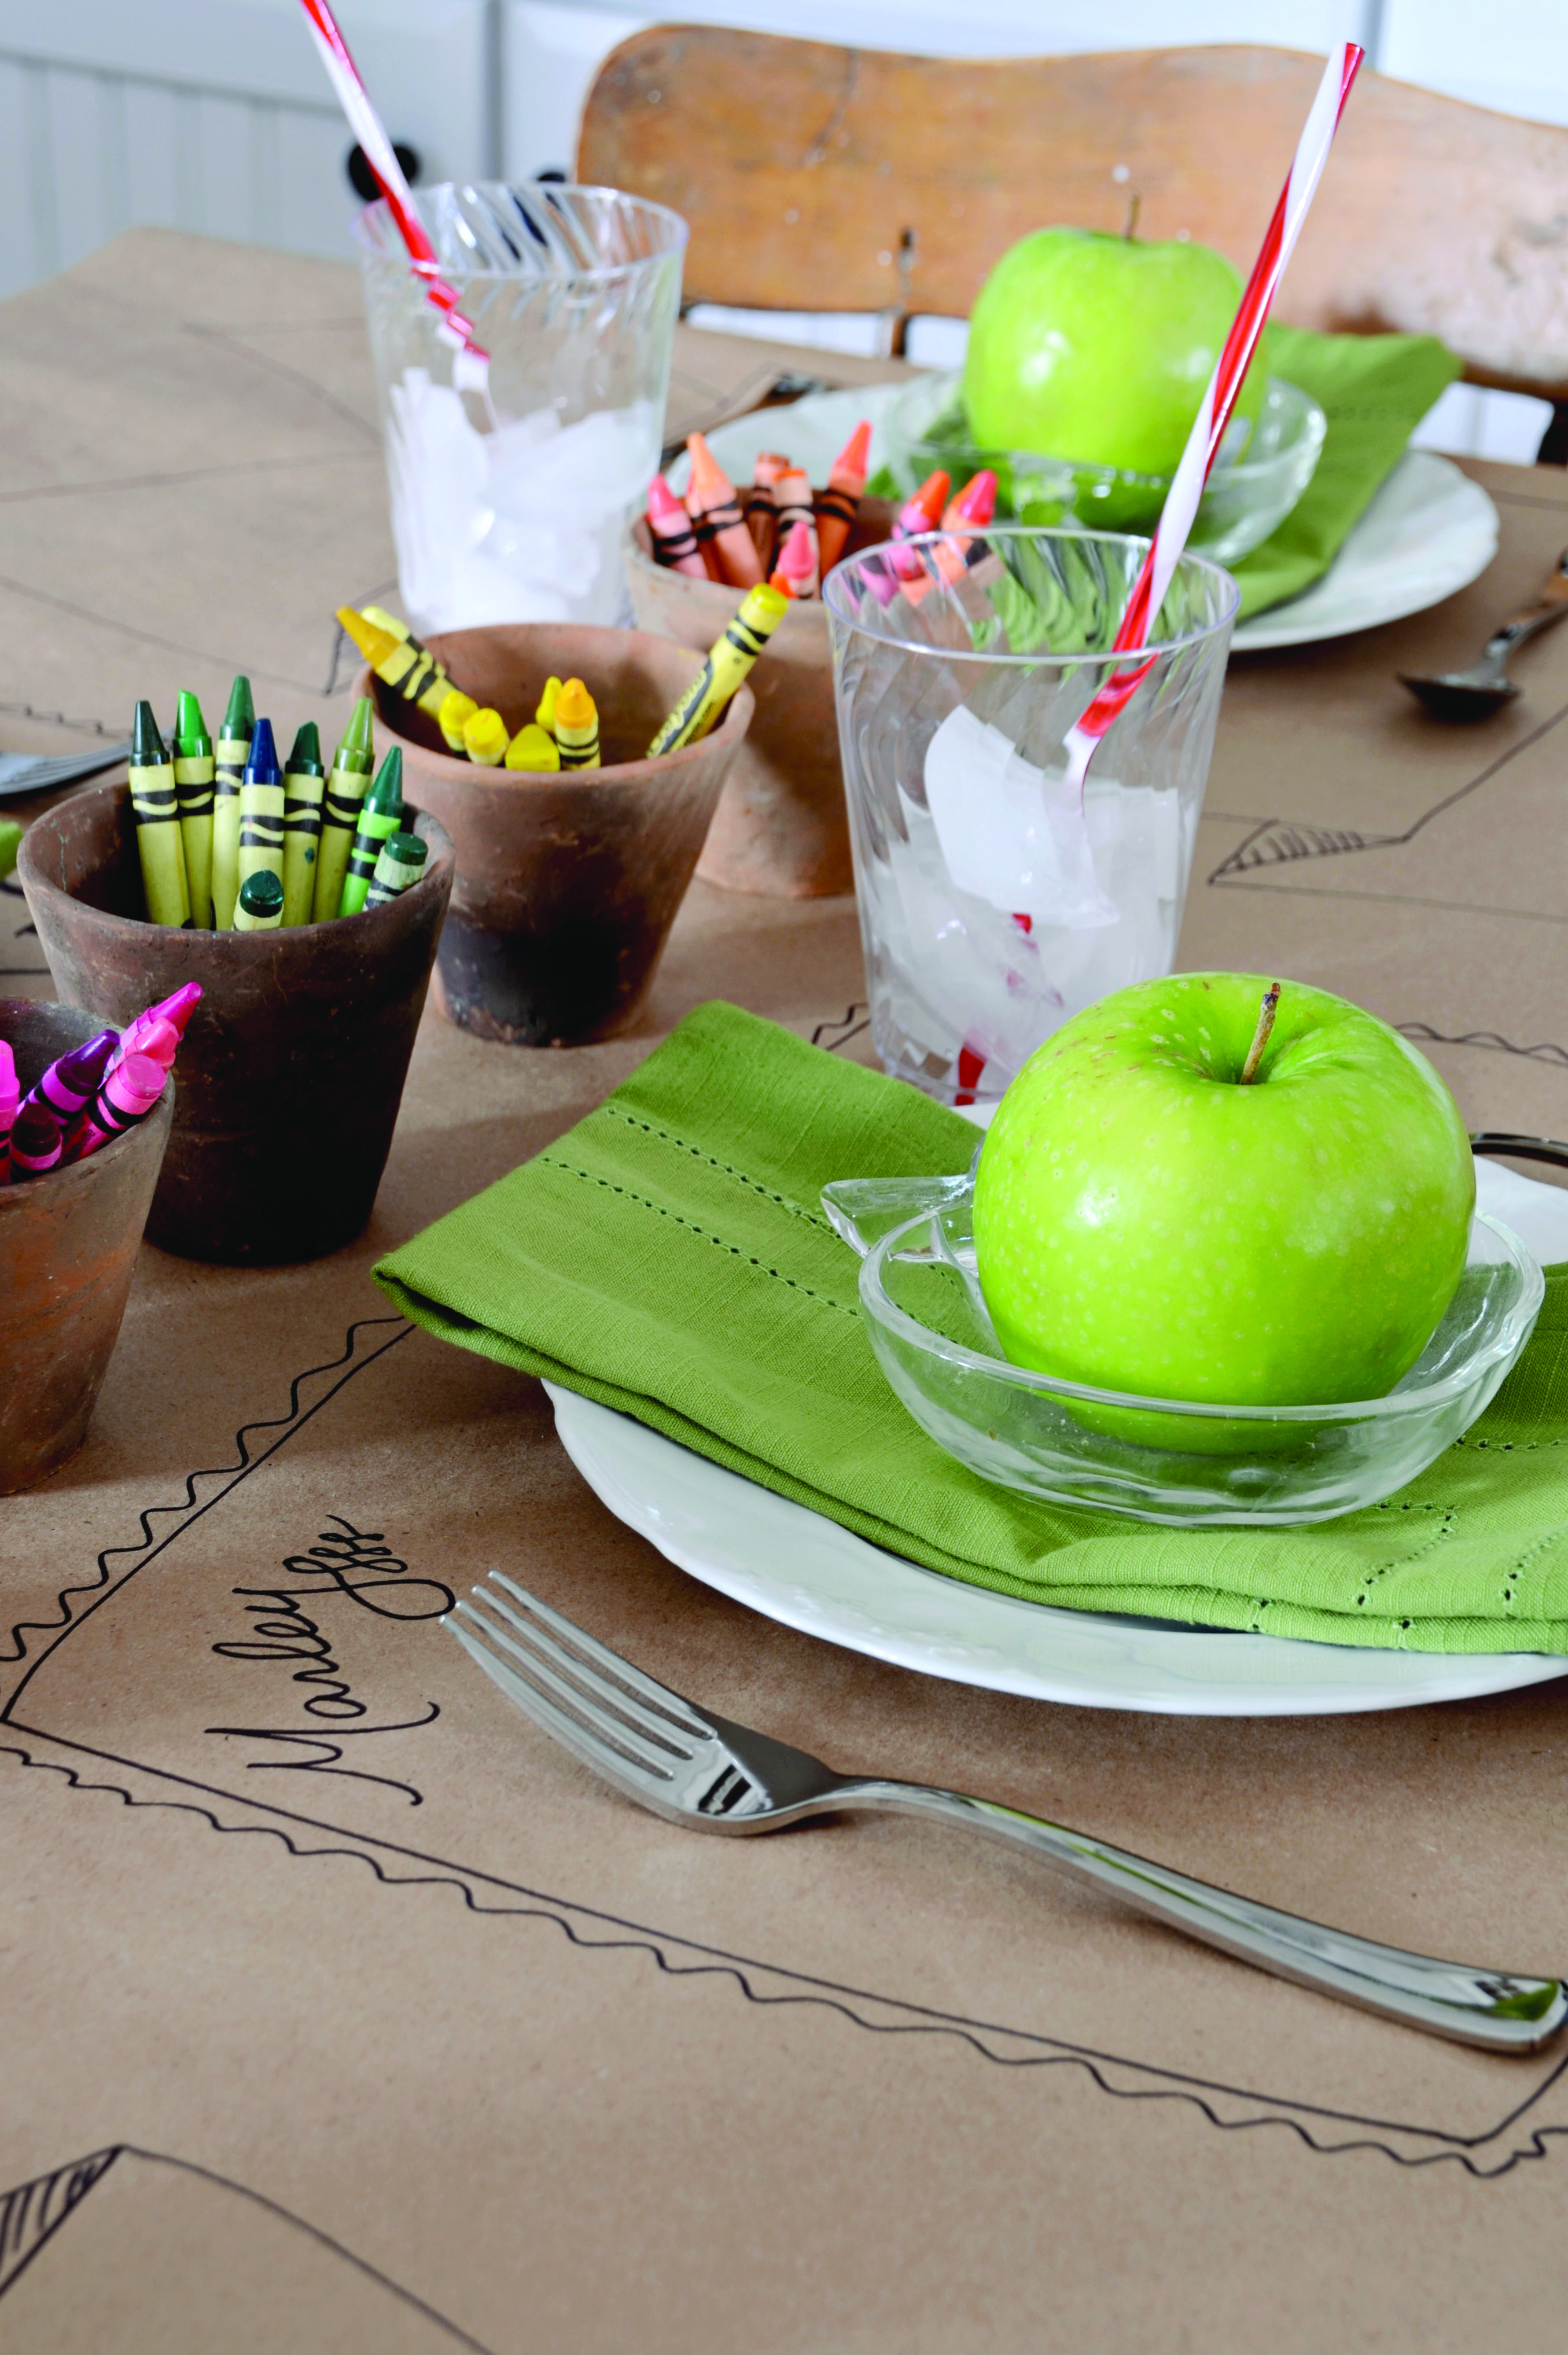 Drawing place mats